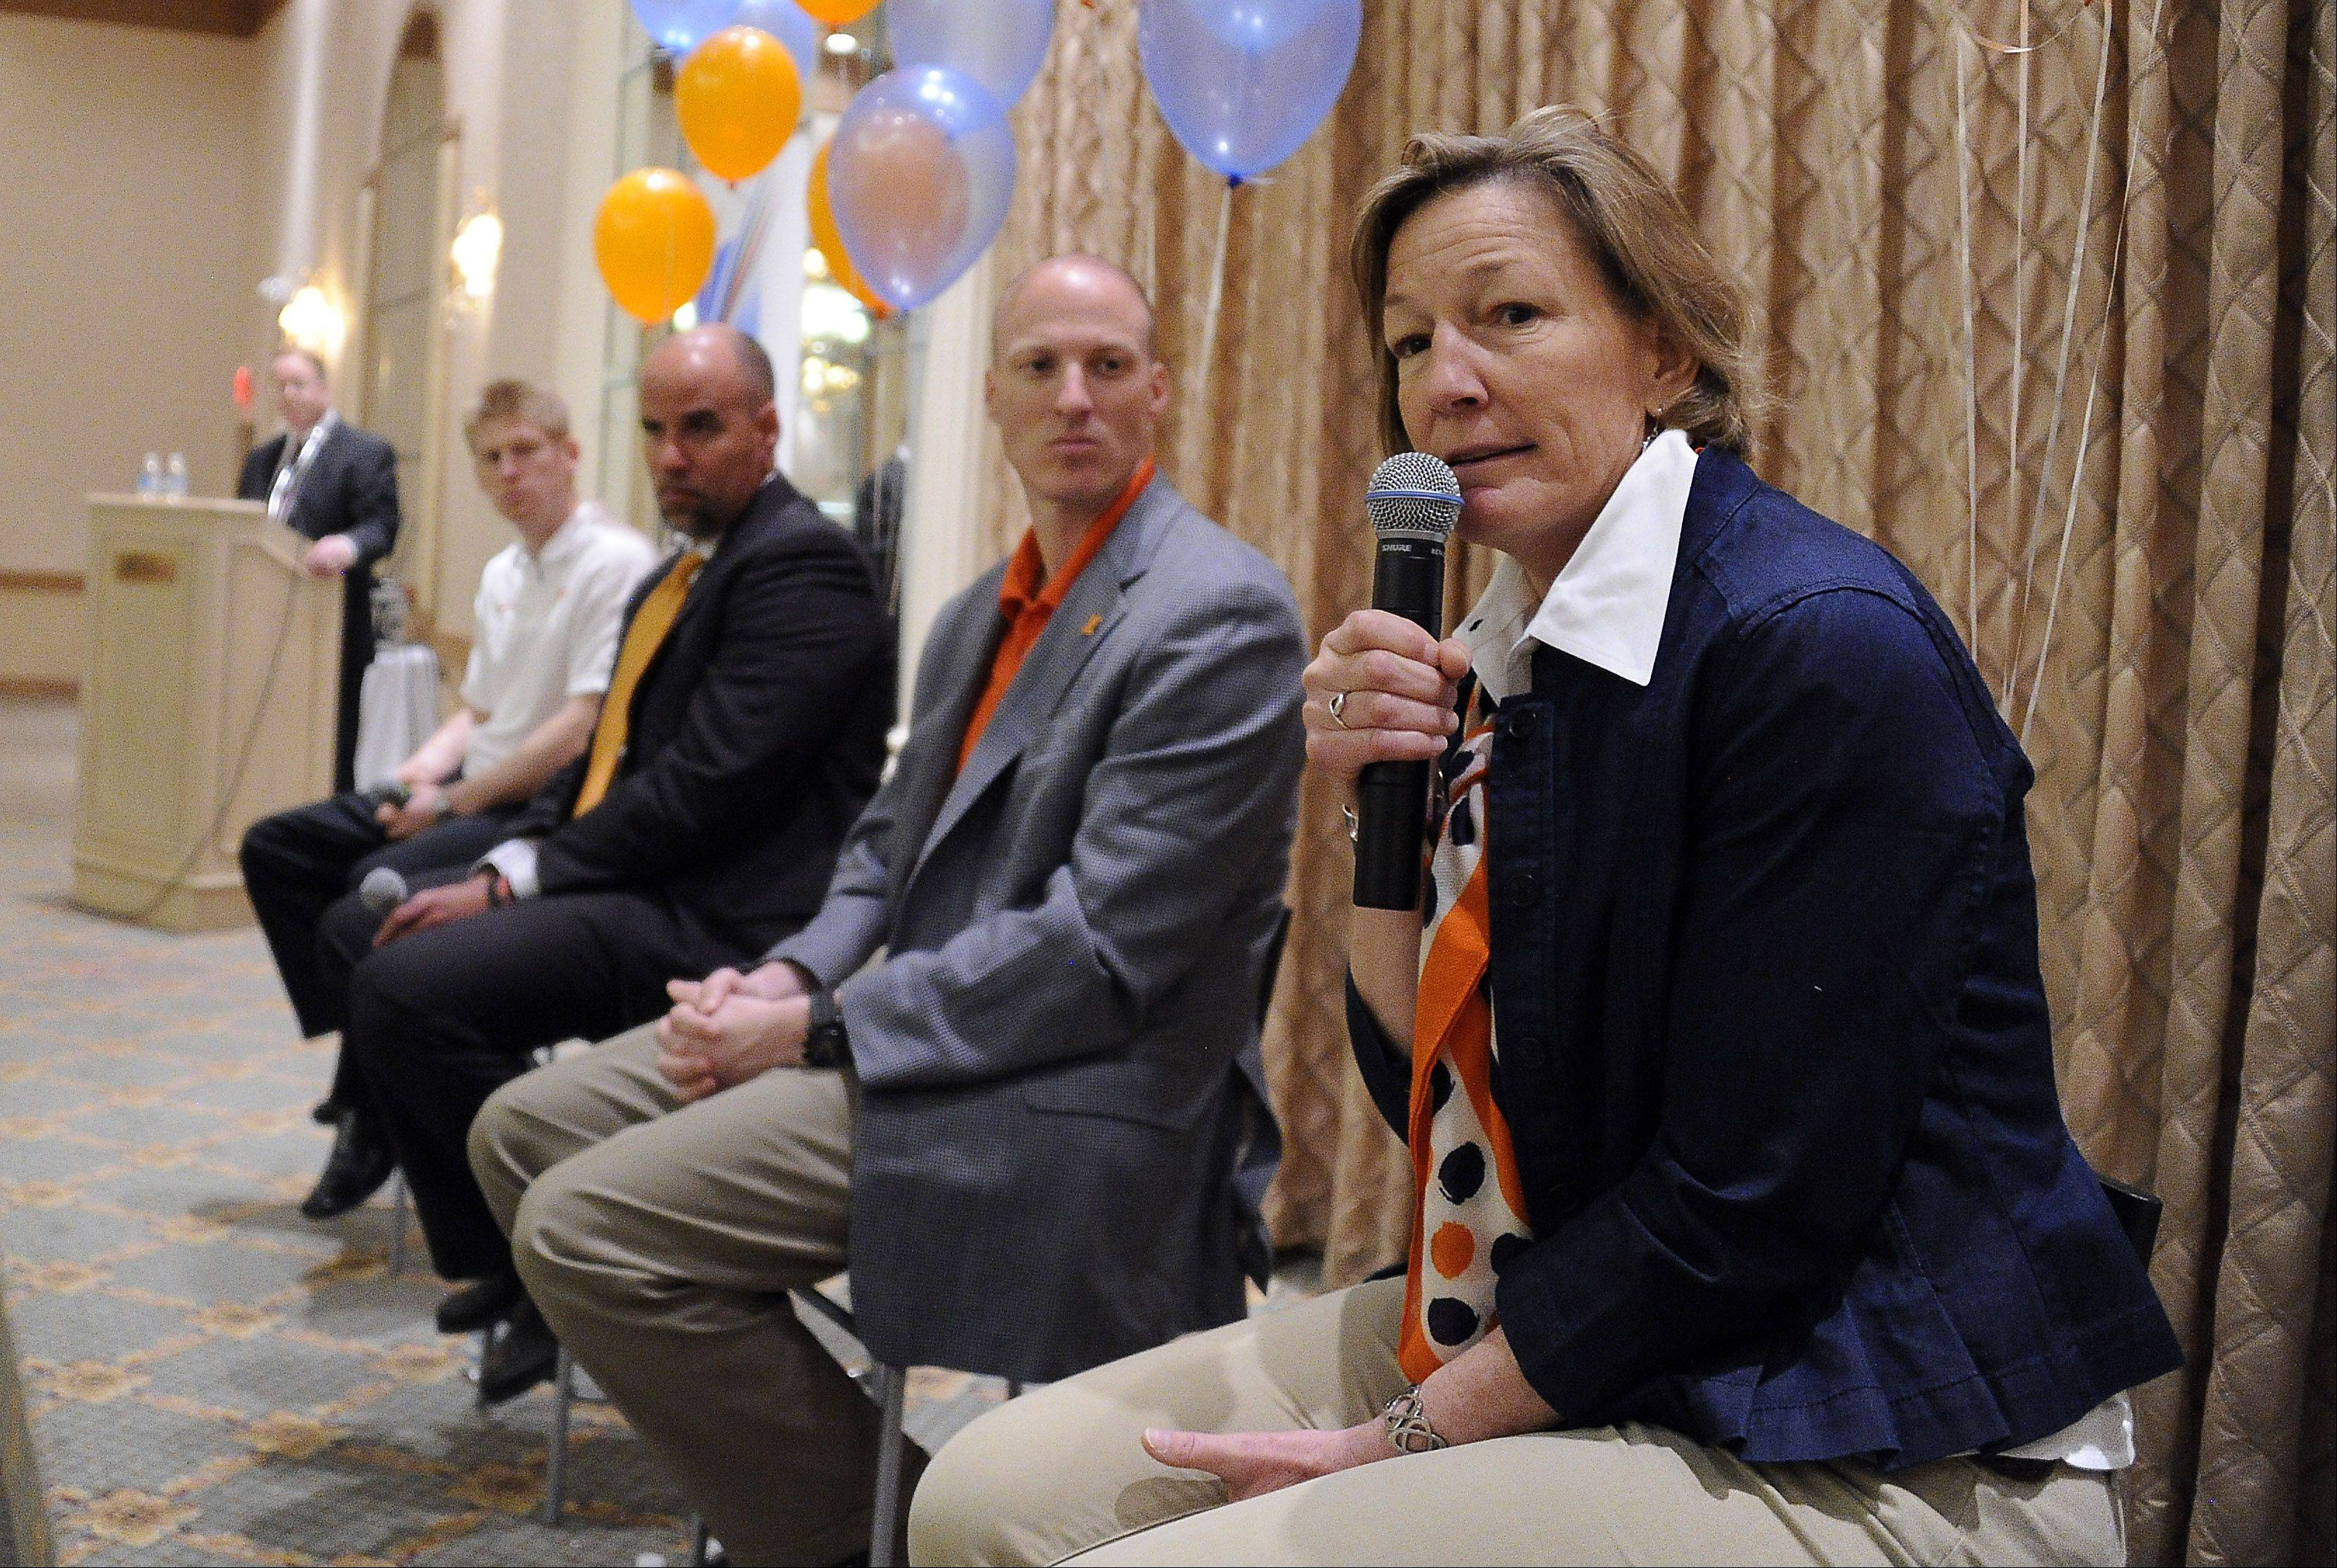 University of Illinois women's soccer coach Janet Rayfield answers questions from the audience at the Illini Caravan event Wednesday in Rolling Meadows.